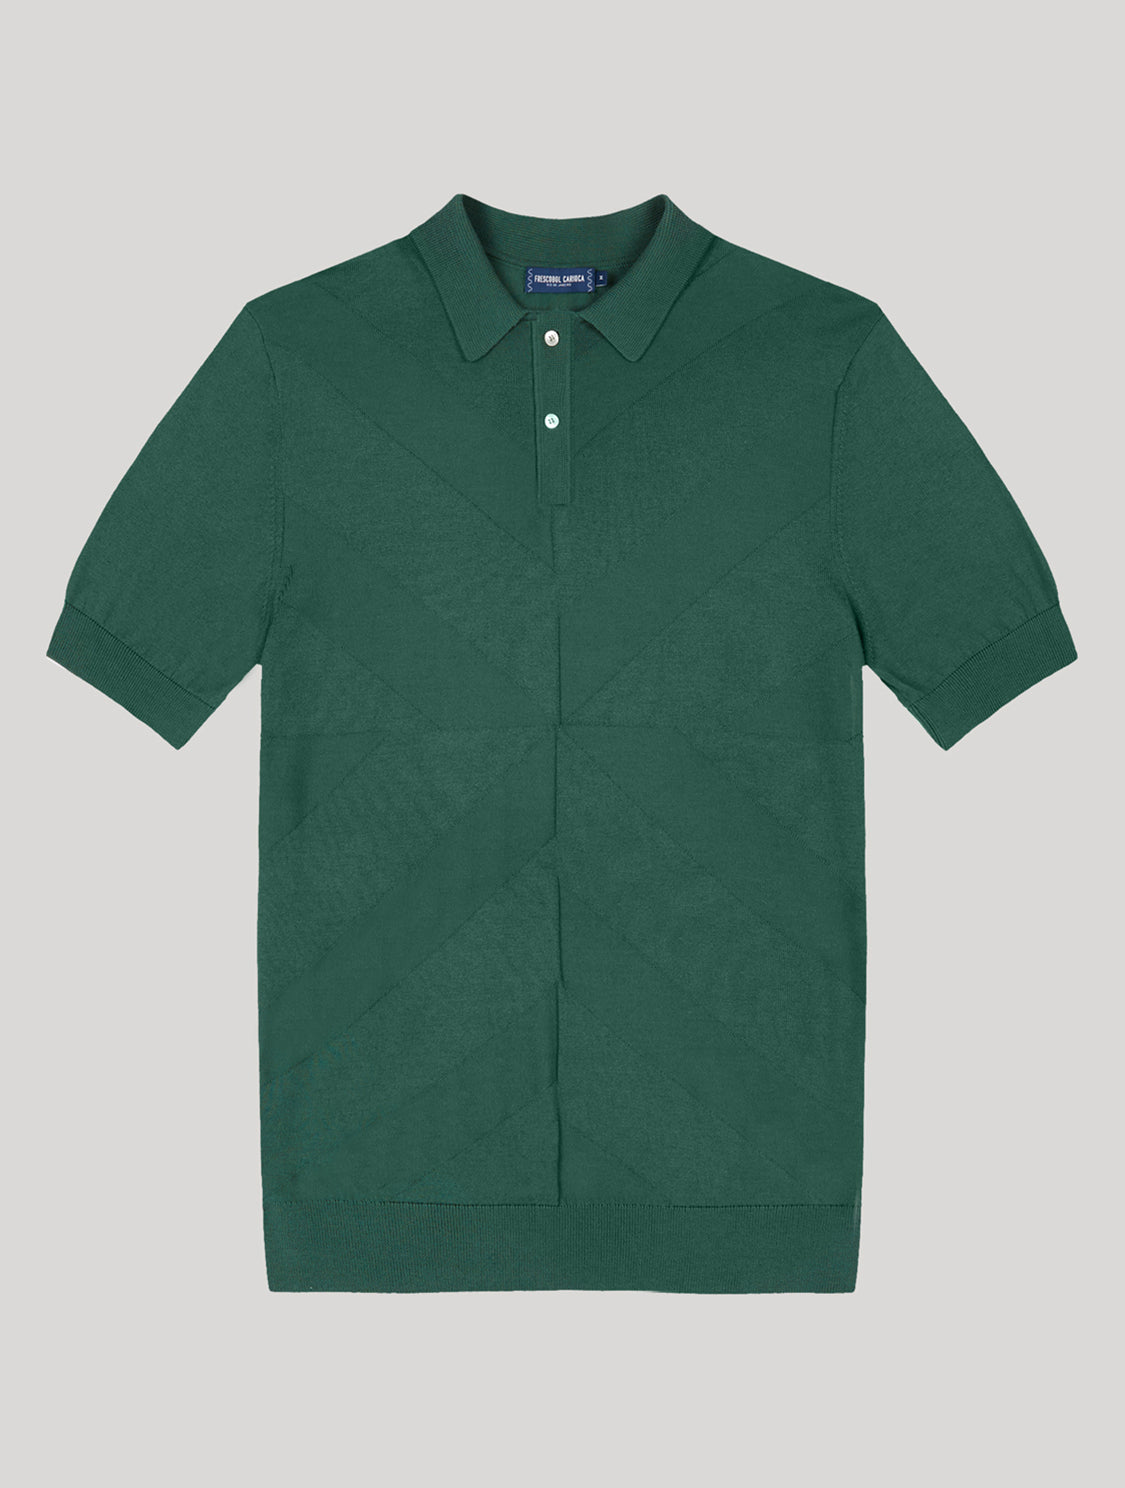 Francisco Knit Jacquard Aegean Green M